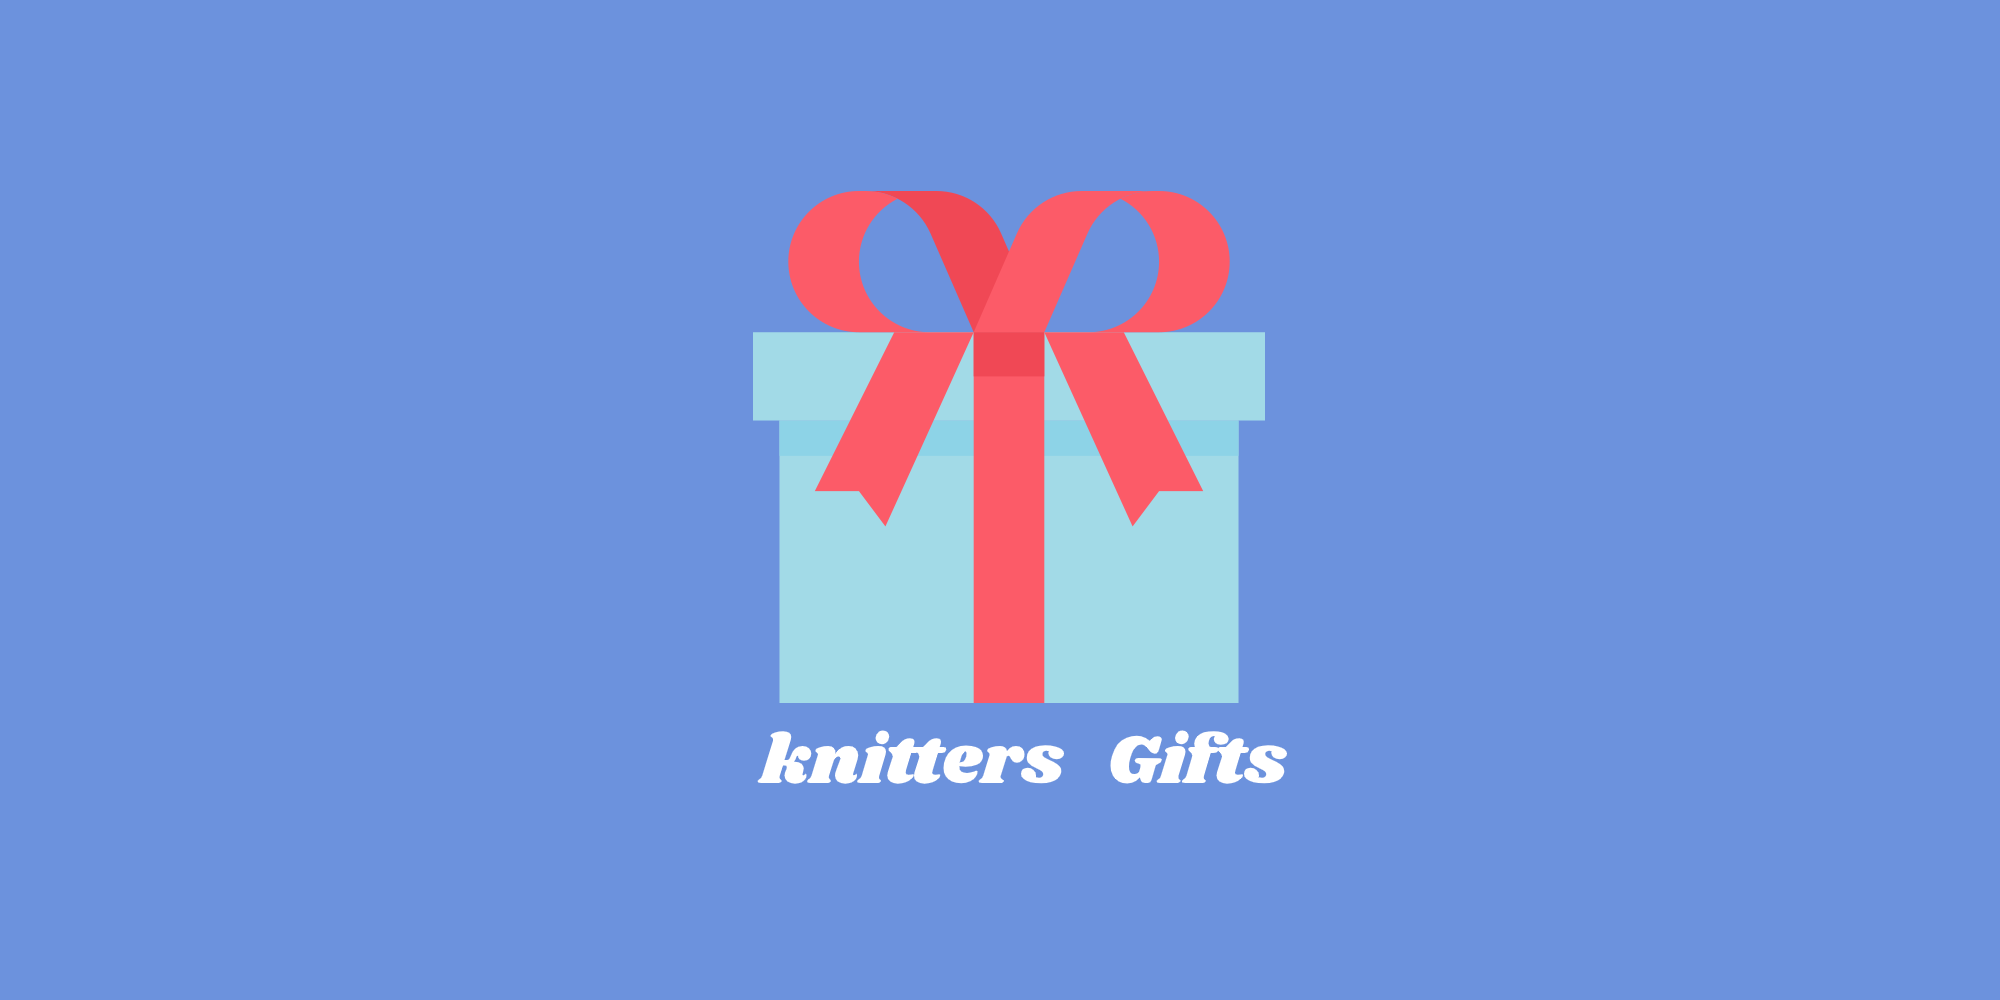 knitters Gifts